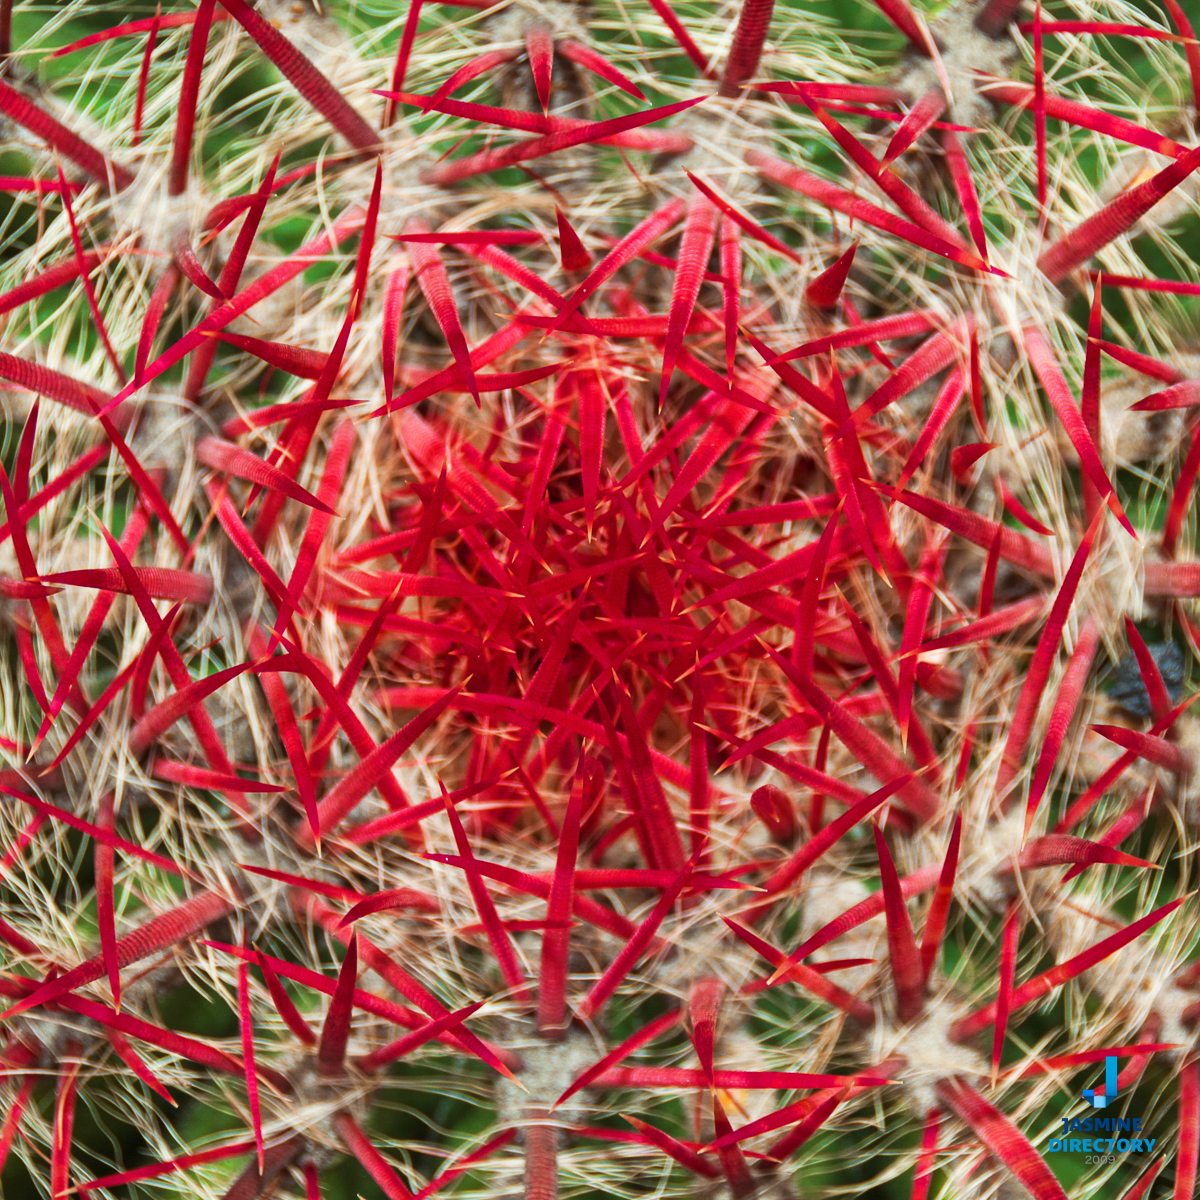 Cactus with red spines